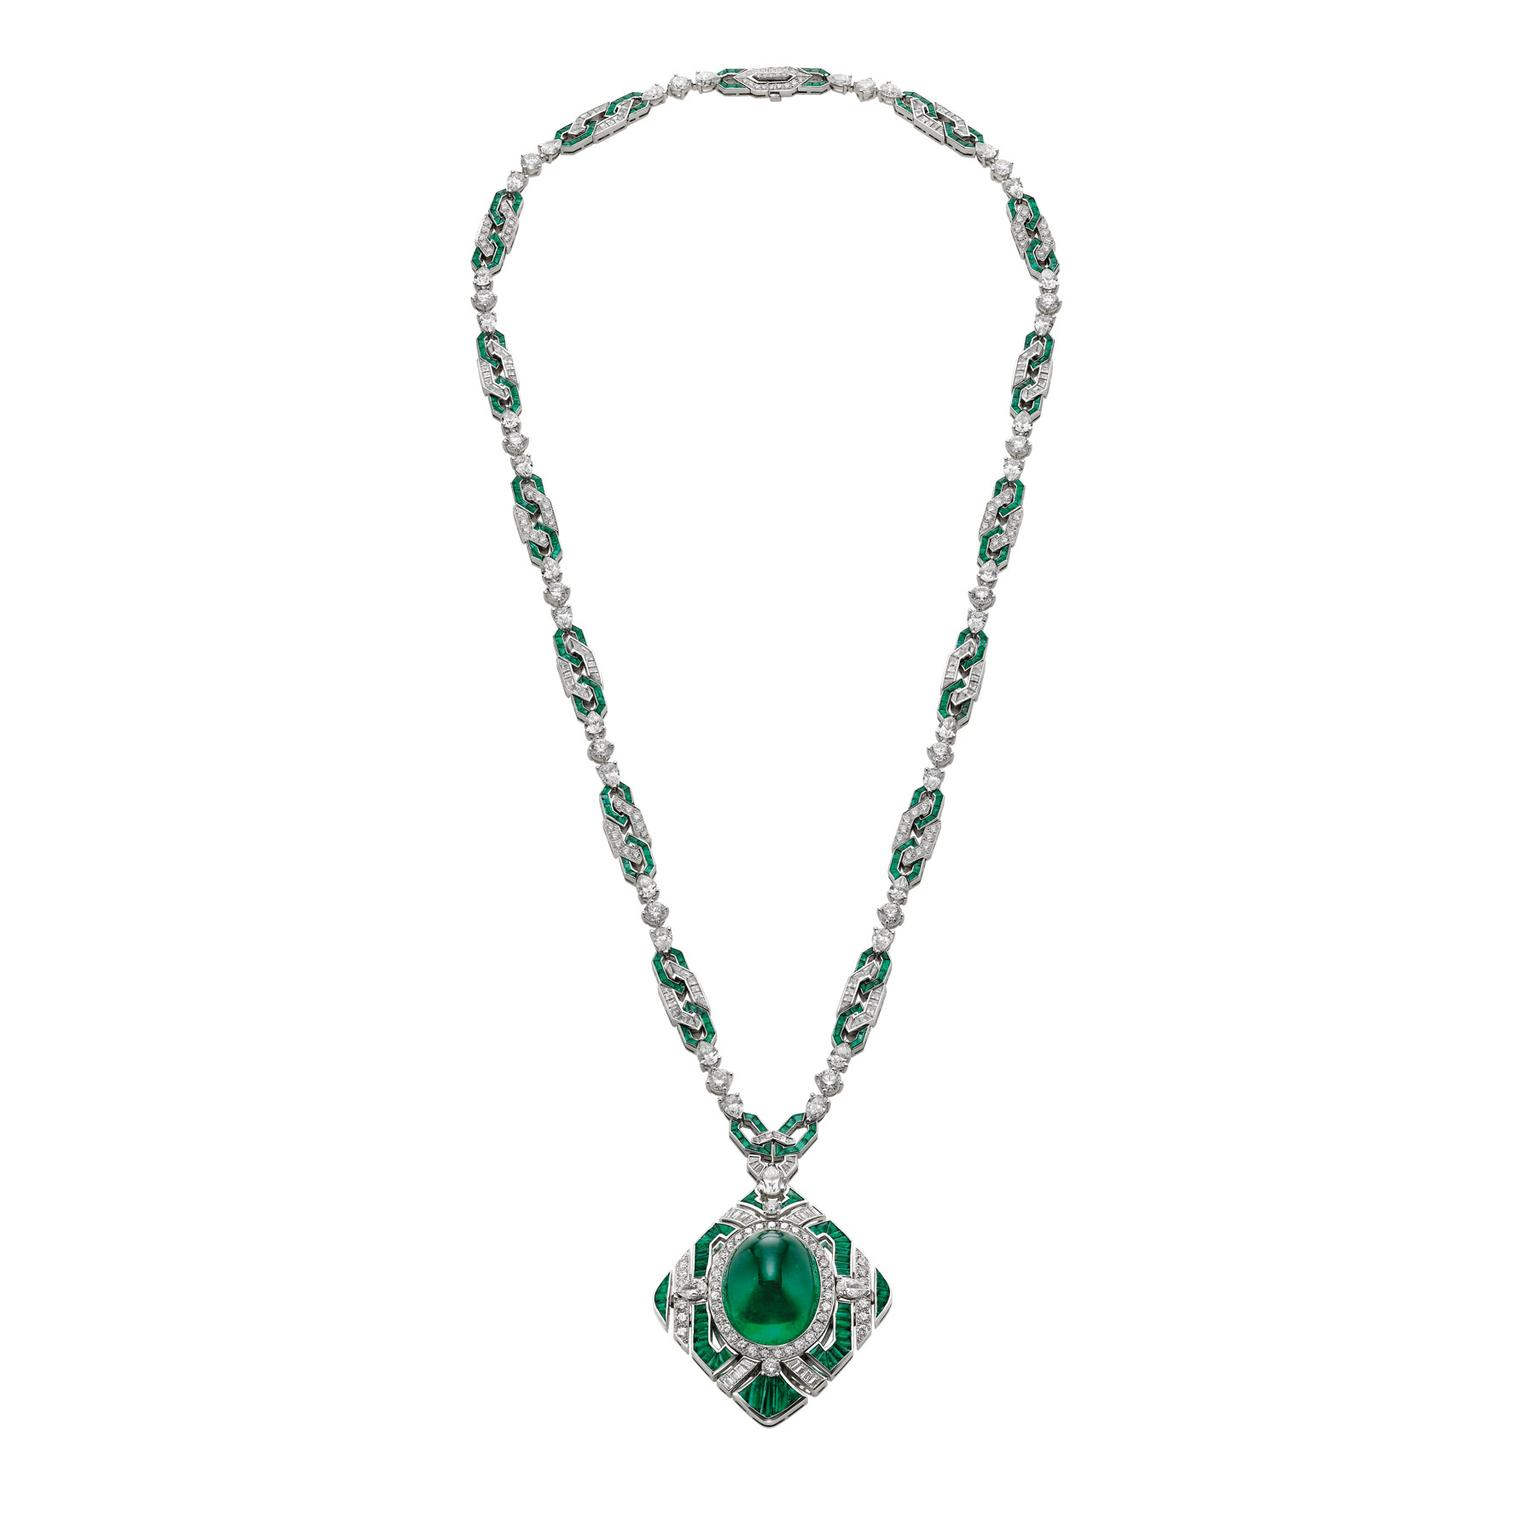 Bulgari Festa The Green Liz high jewellery necklace